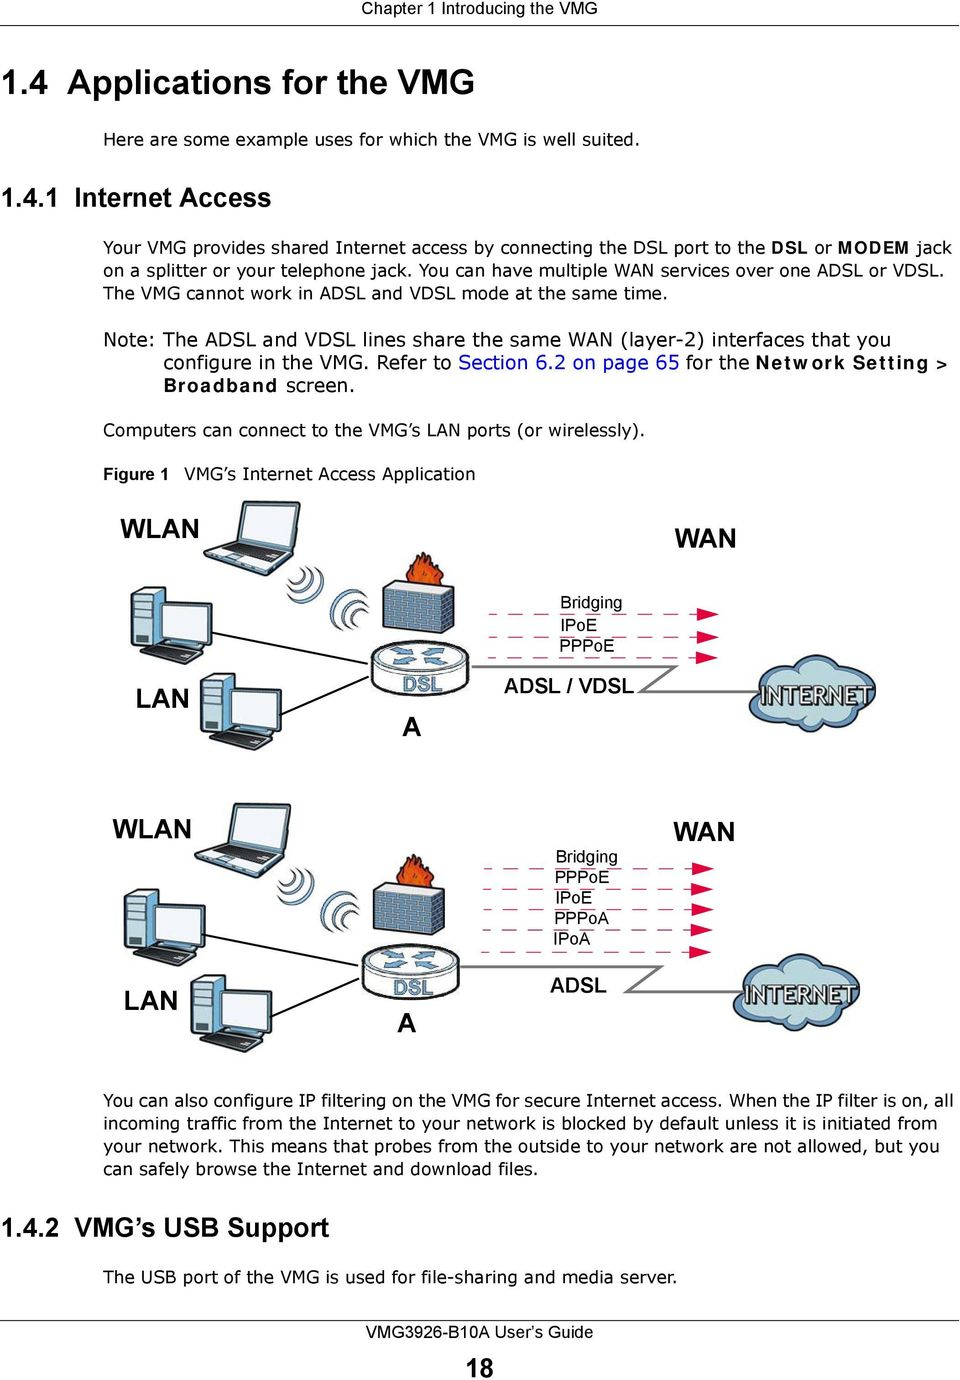 Note: The ADSL and VDSL lines share the same WAN (layer-2) interfaces that you configure in the VMG. Refer to Section 6.2 on page 65 for the Network Setting > Broadband screen.